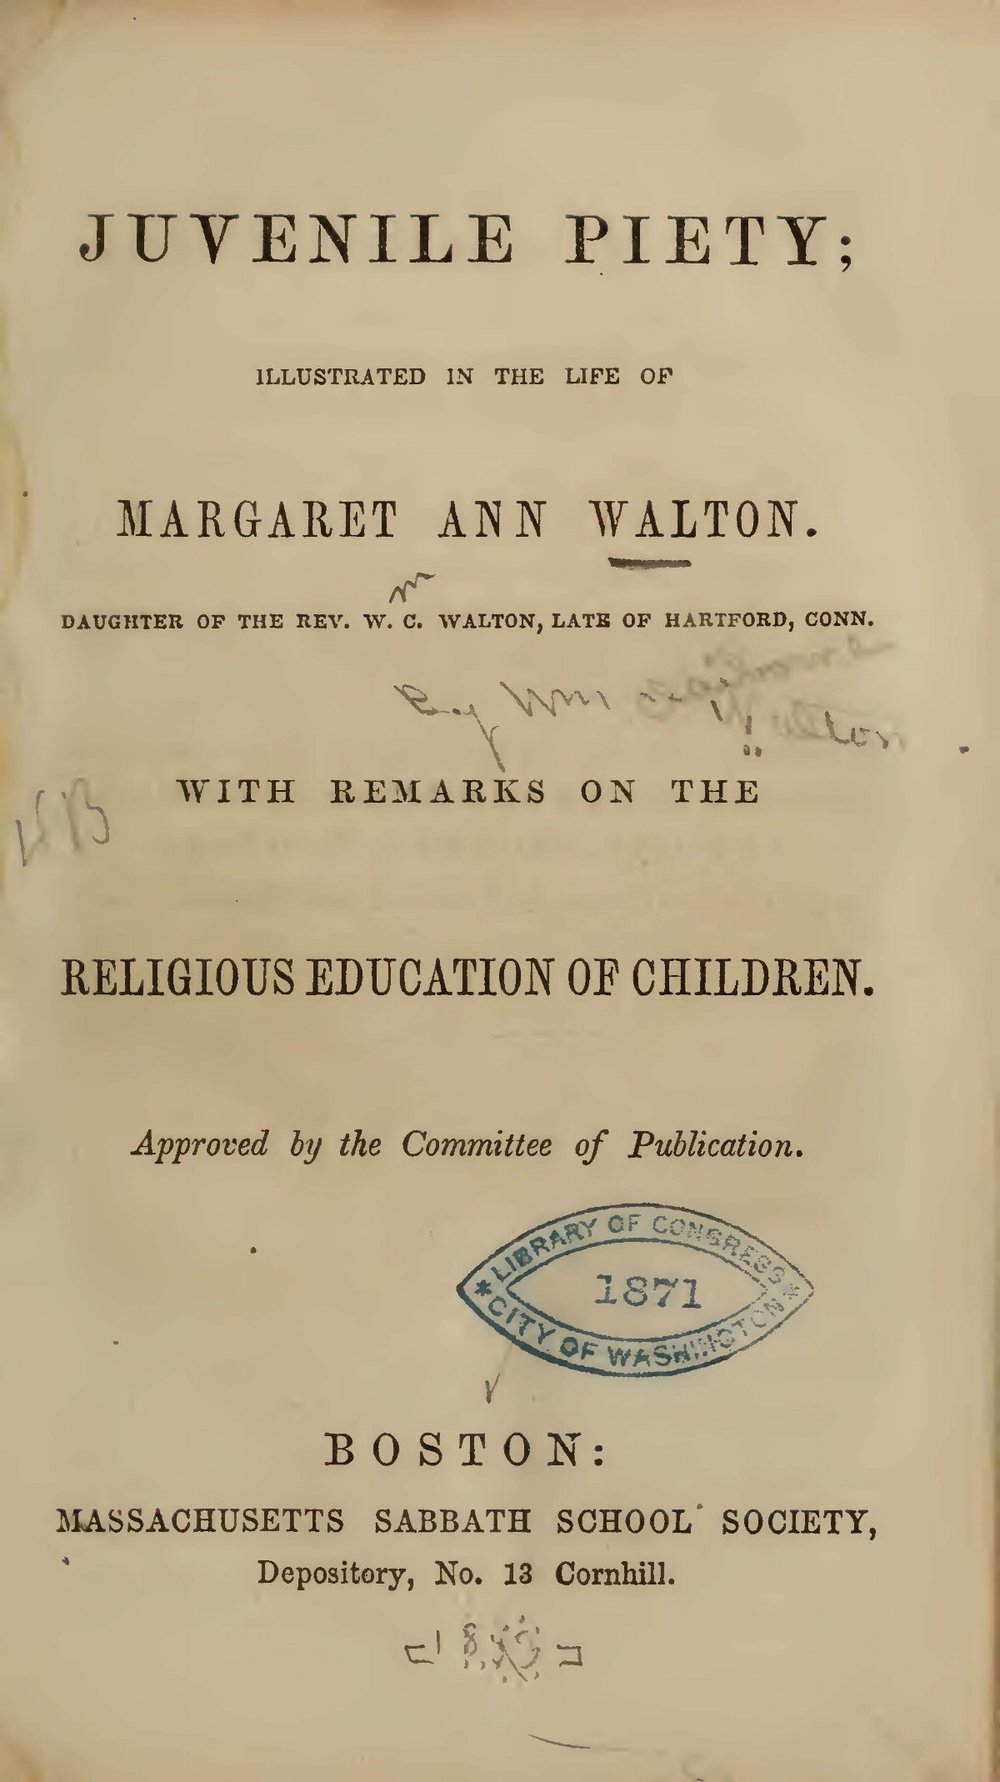 Walton, William Claiborne, Juvenile Piety Title Page.jpg